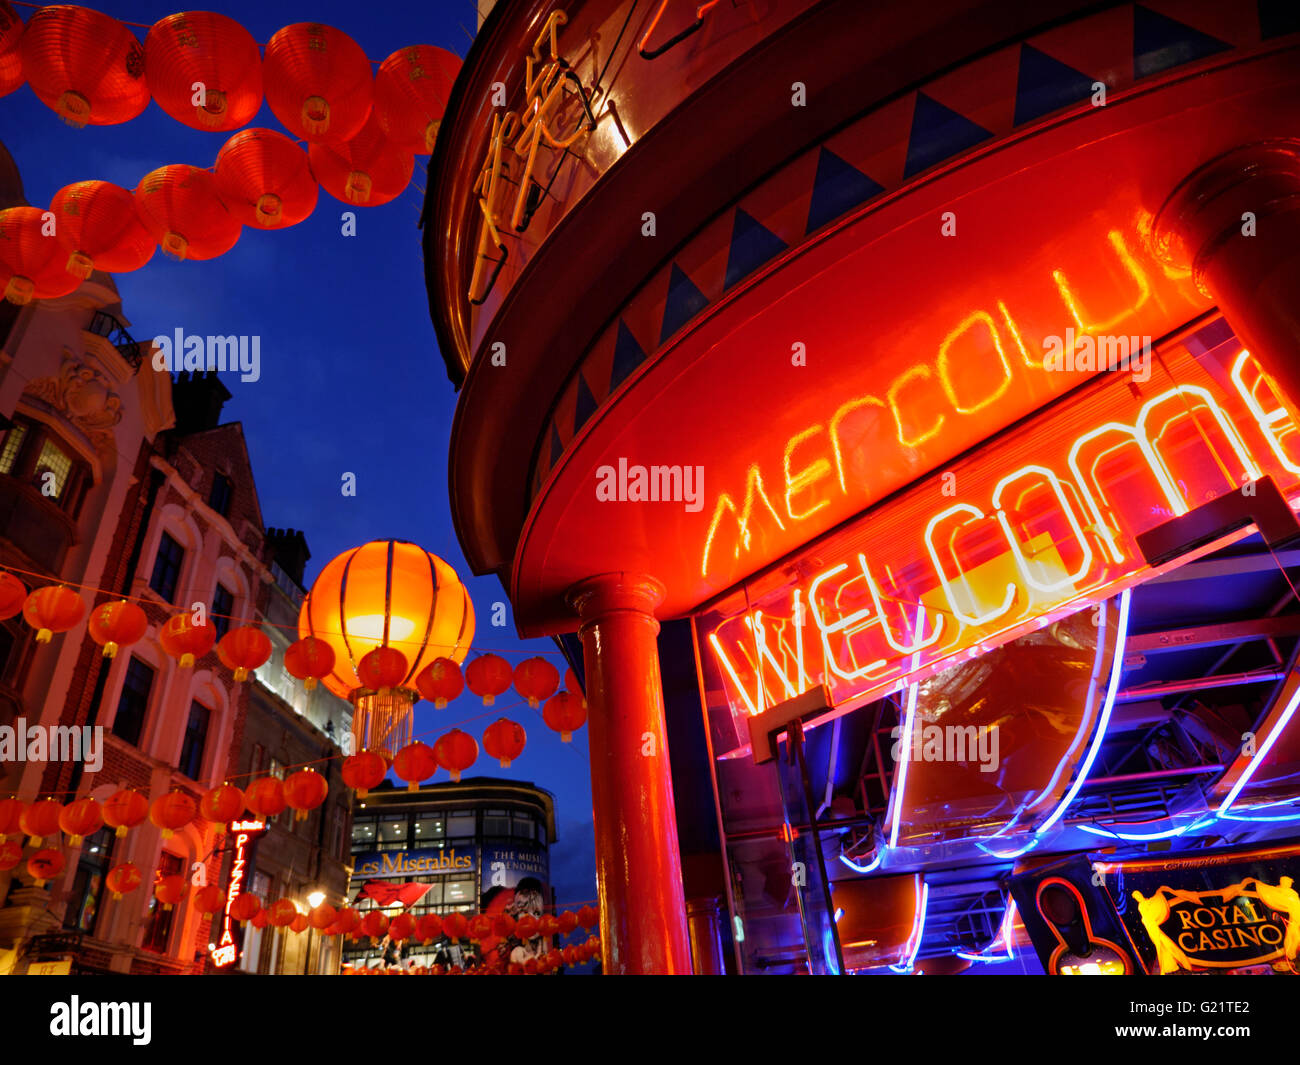 CHINATOWN WELCOME SOHO LONDON NIGHT Chinese lanterns lit up on a busy night in Wardour Street with neon 'Welcome' - Stock Image